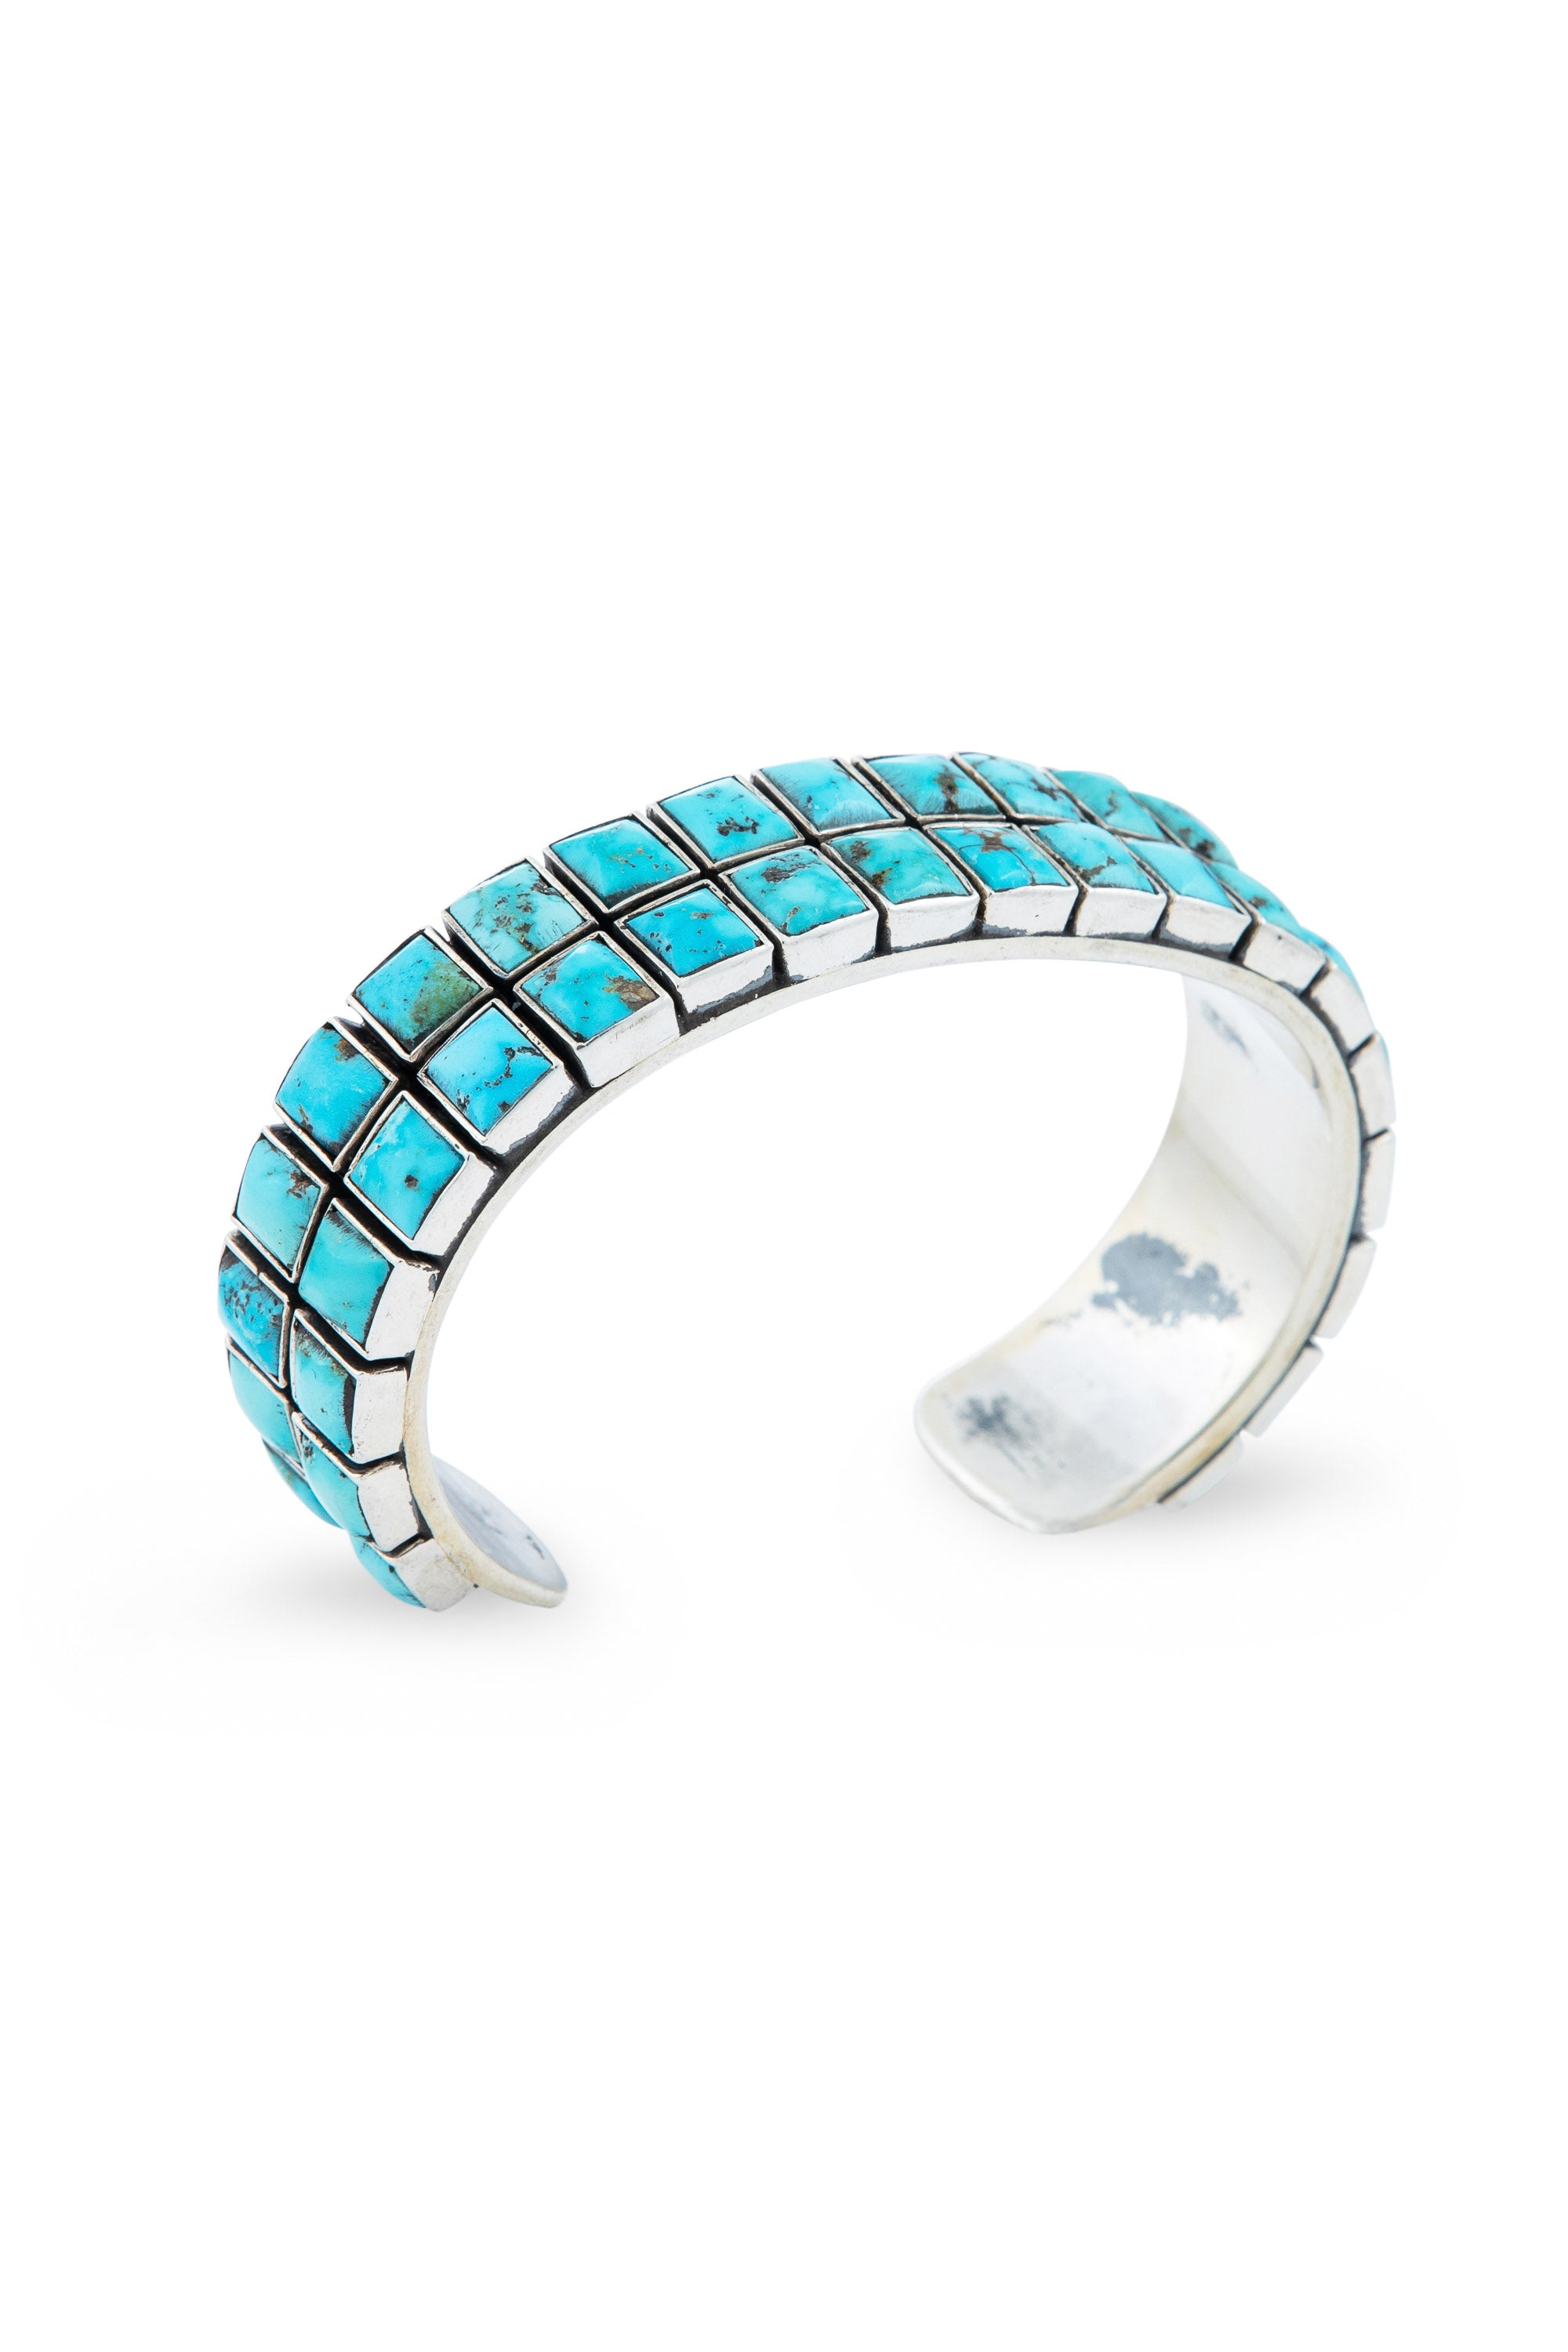 Cuff, Turquoise, 2 Row, 40 Stone, Federico, Contemporary,645